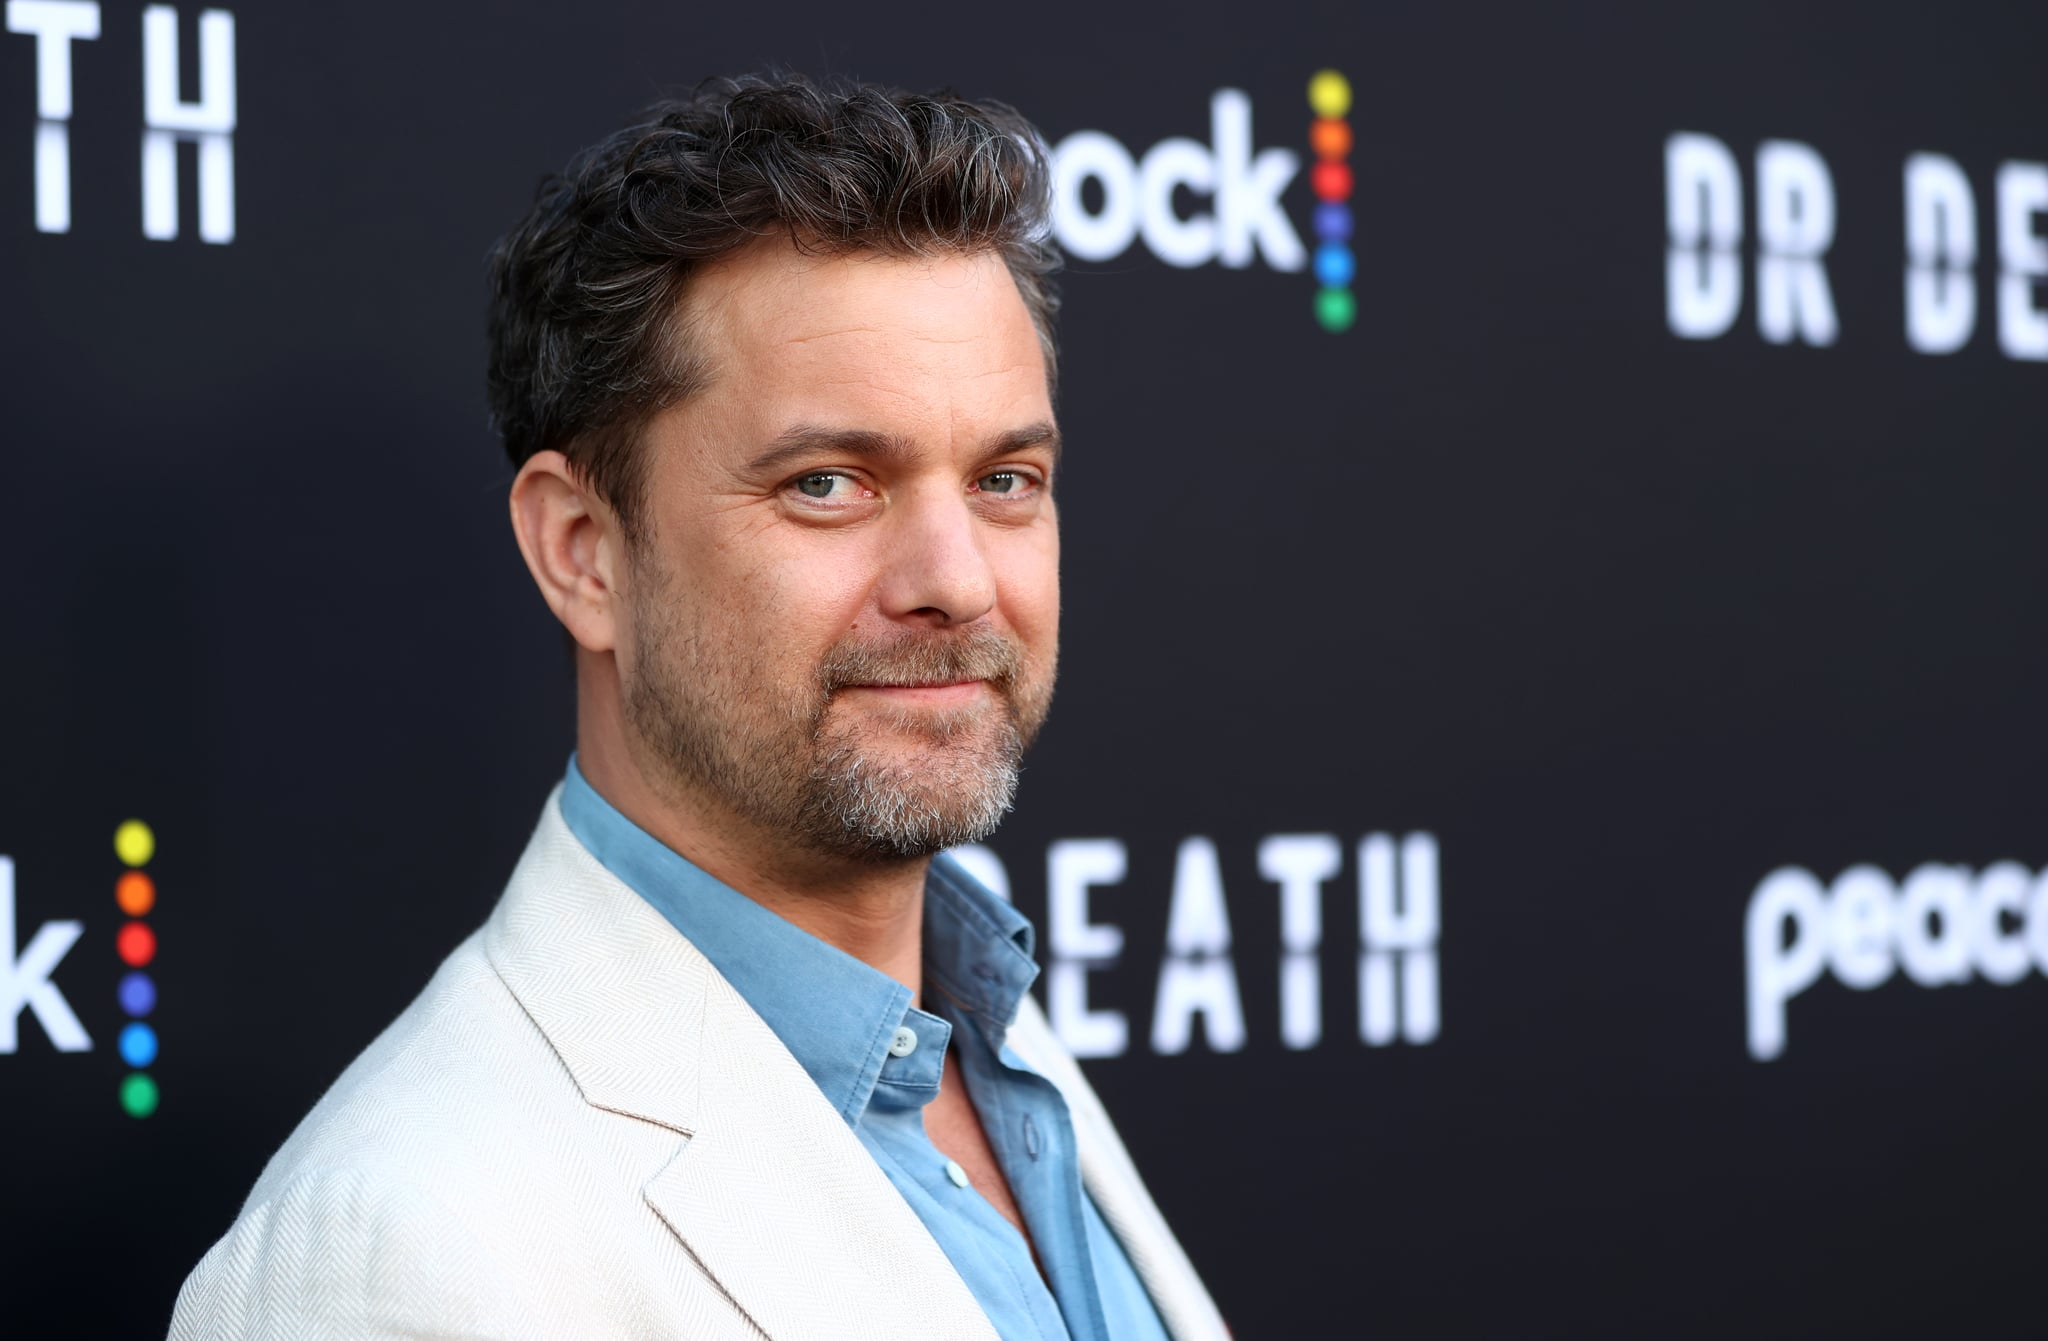 Joshua Jackson, who plays Dr. Death in the new Peacock series.